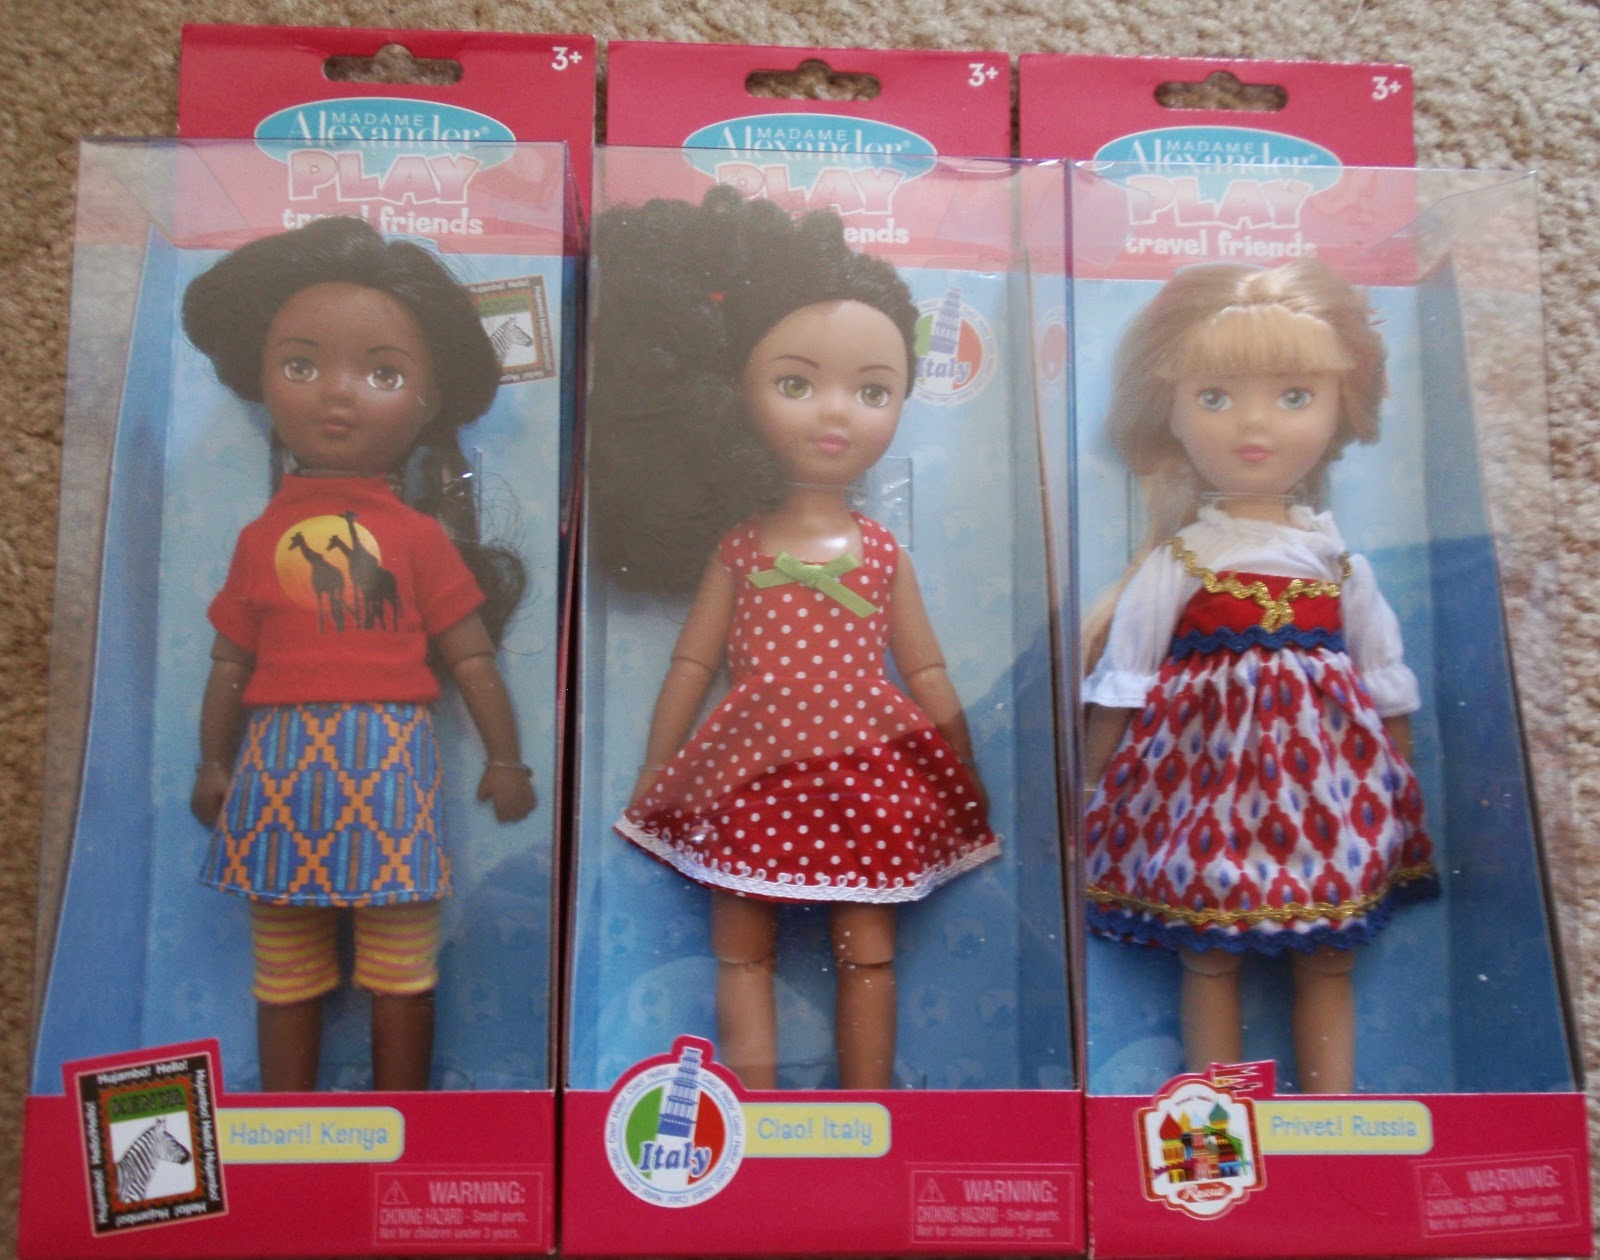 Dolls Kenya Little Alexander My Travel Doll Friends CornerMadame 6y7fYbg